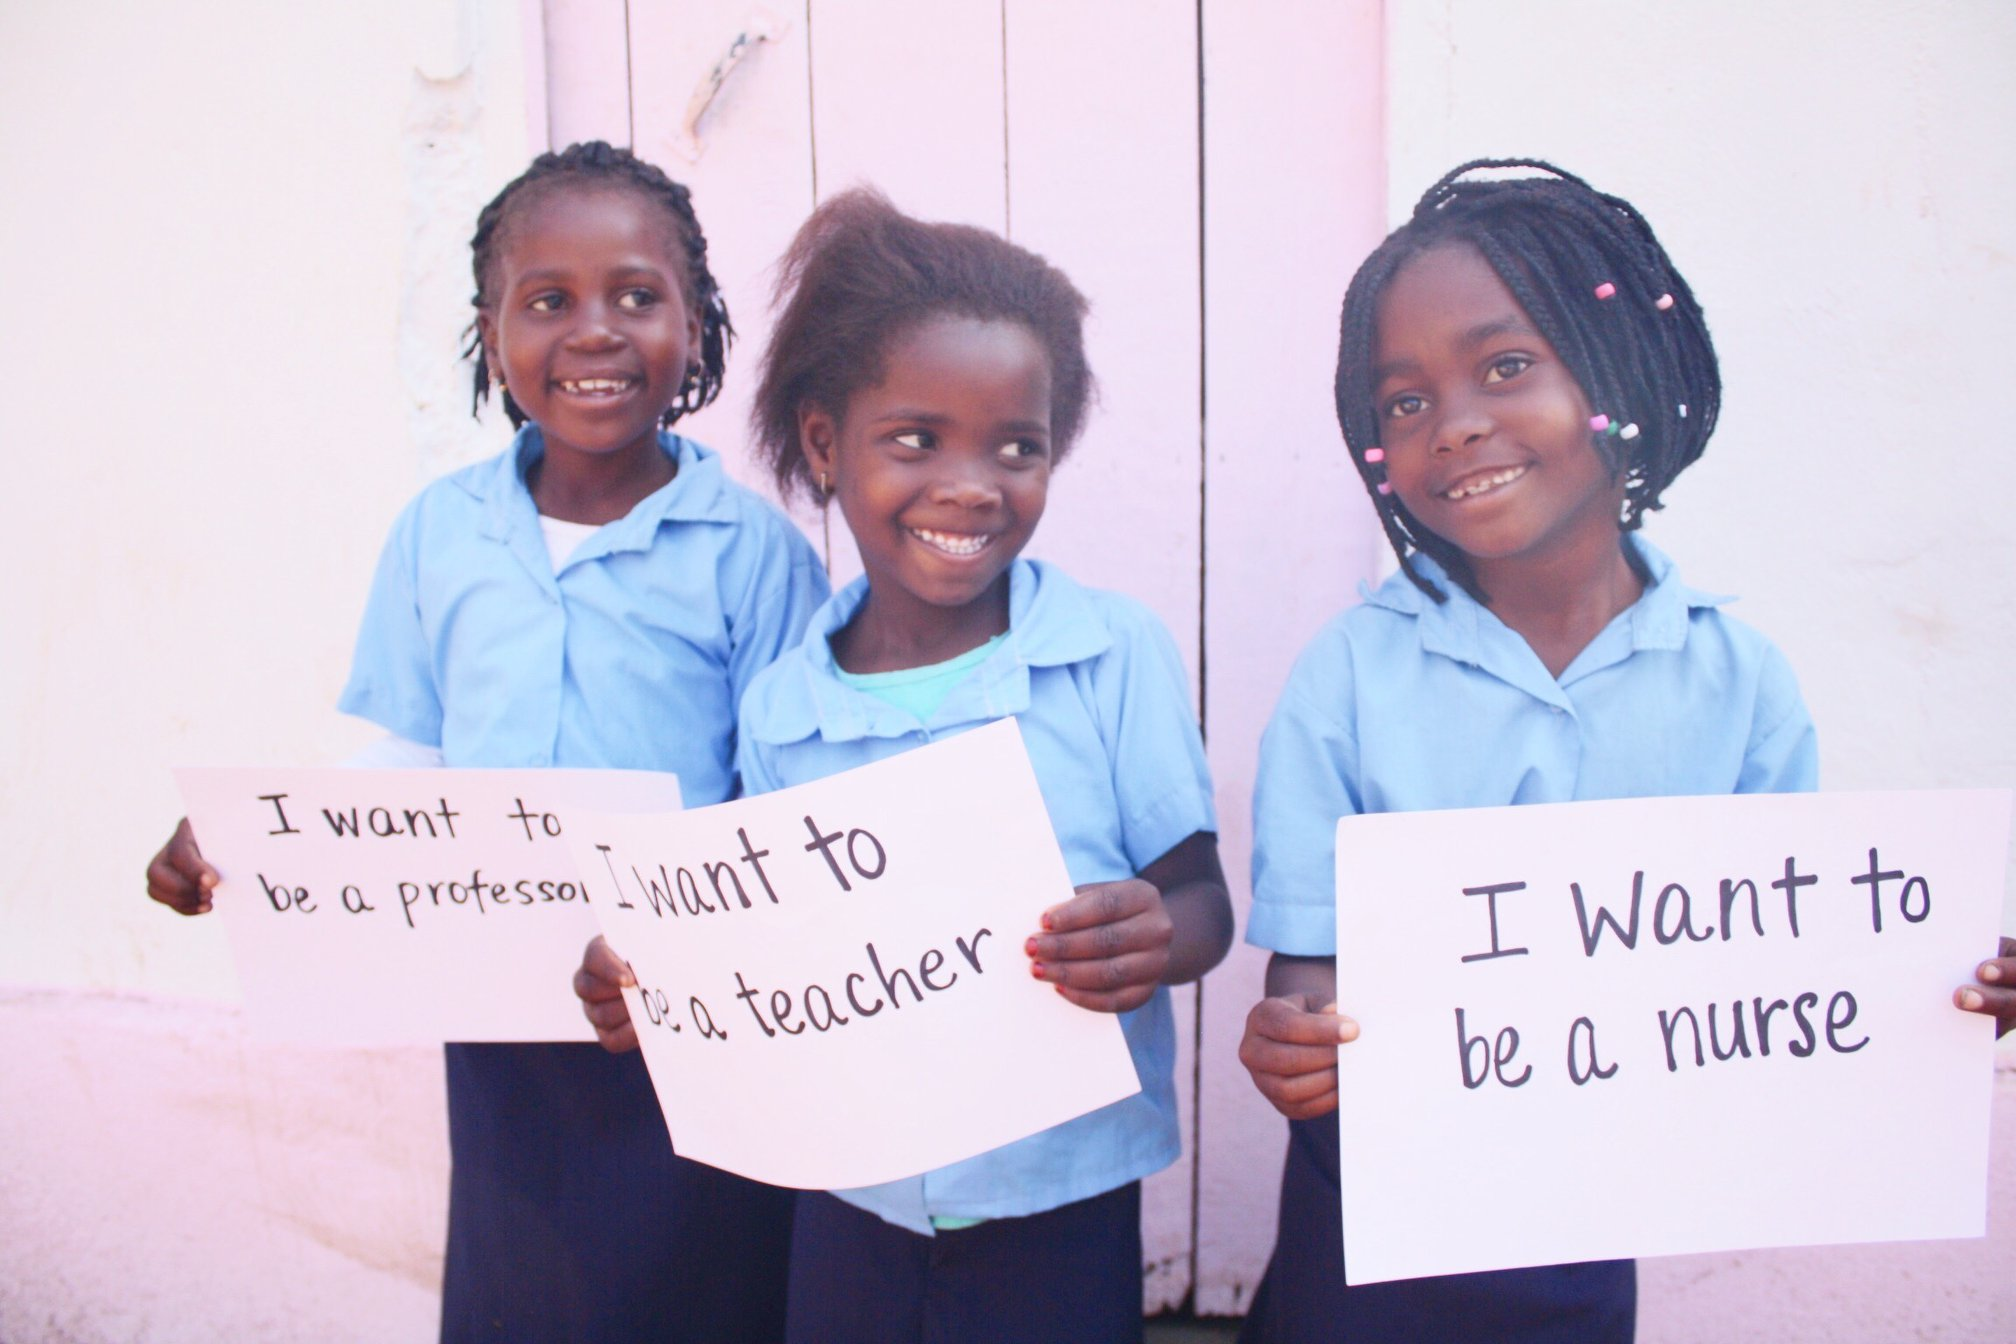 Because of last year's campaign, these three girls, Mayita, Ética, and Gilda, were able to start first grade and start to dream for the future! Kurandza sent 100 girls to school last year, and this year their goal is to double that.